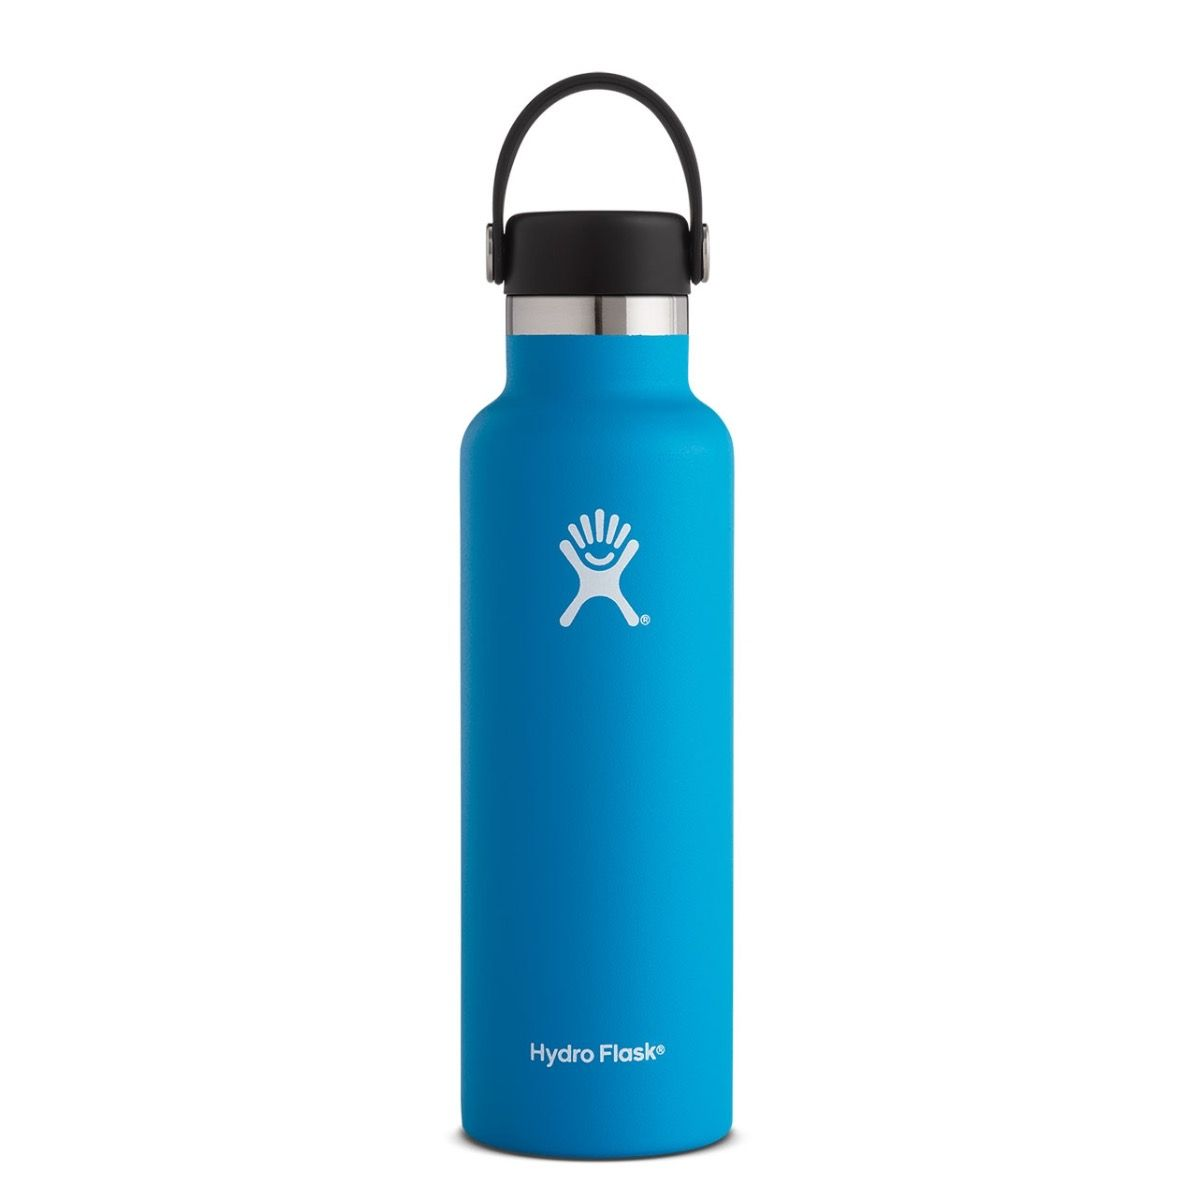 21 Oz 621 Ml Standard Mouth Insulated Water Bottle Hydro Flask